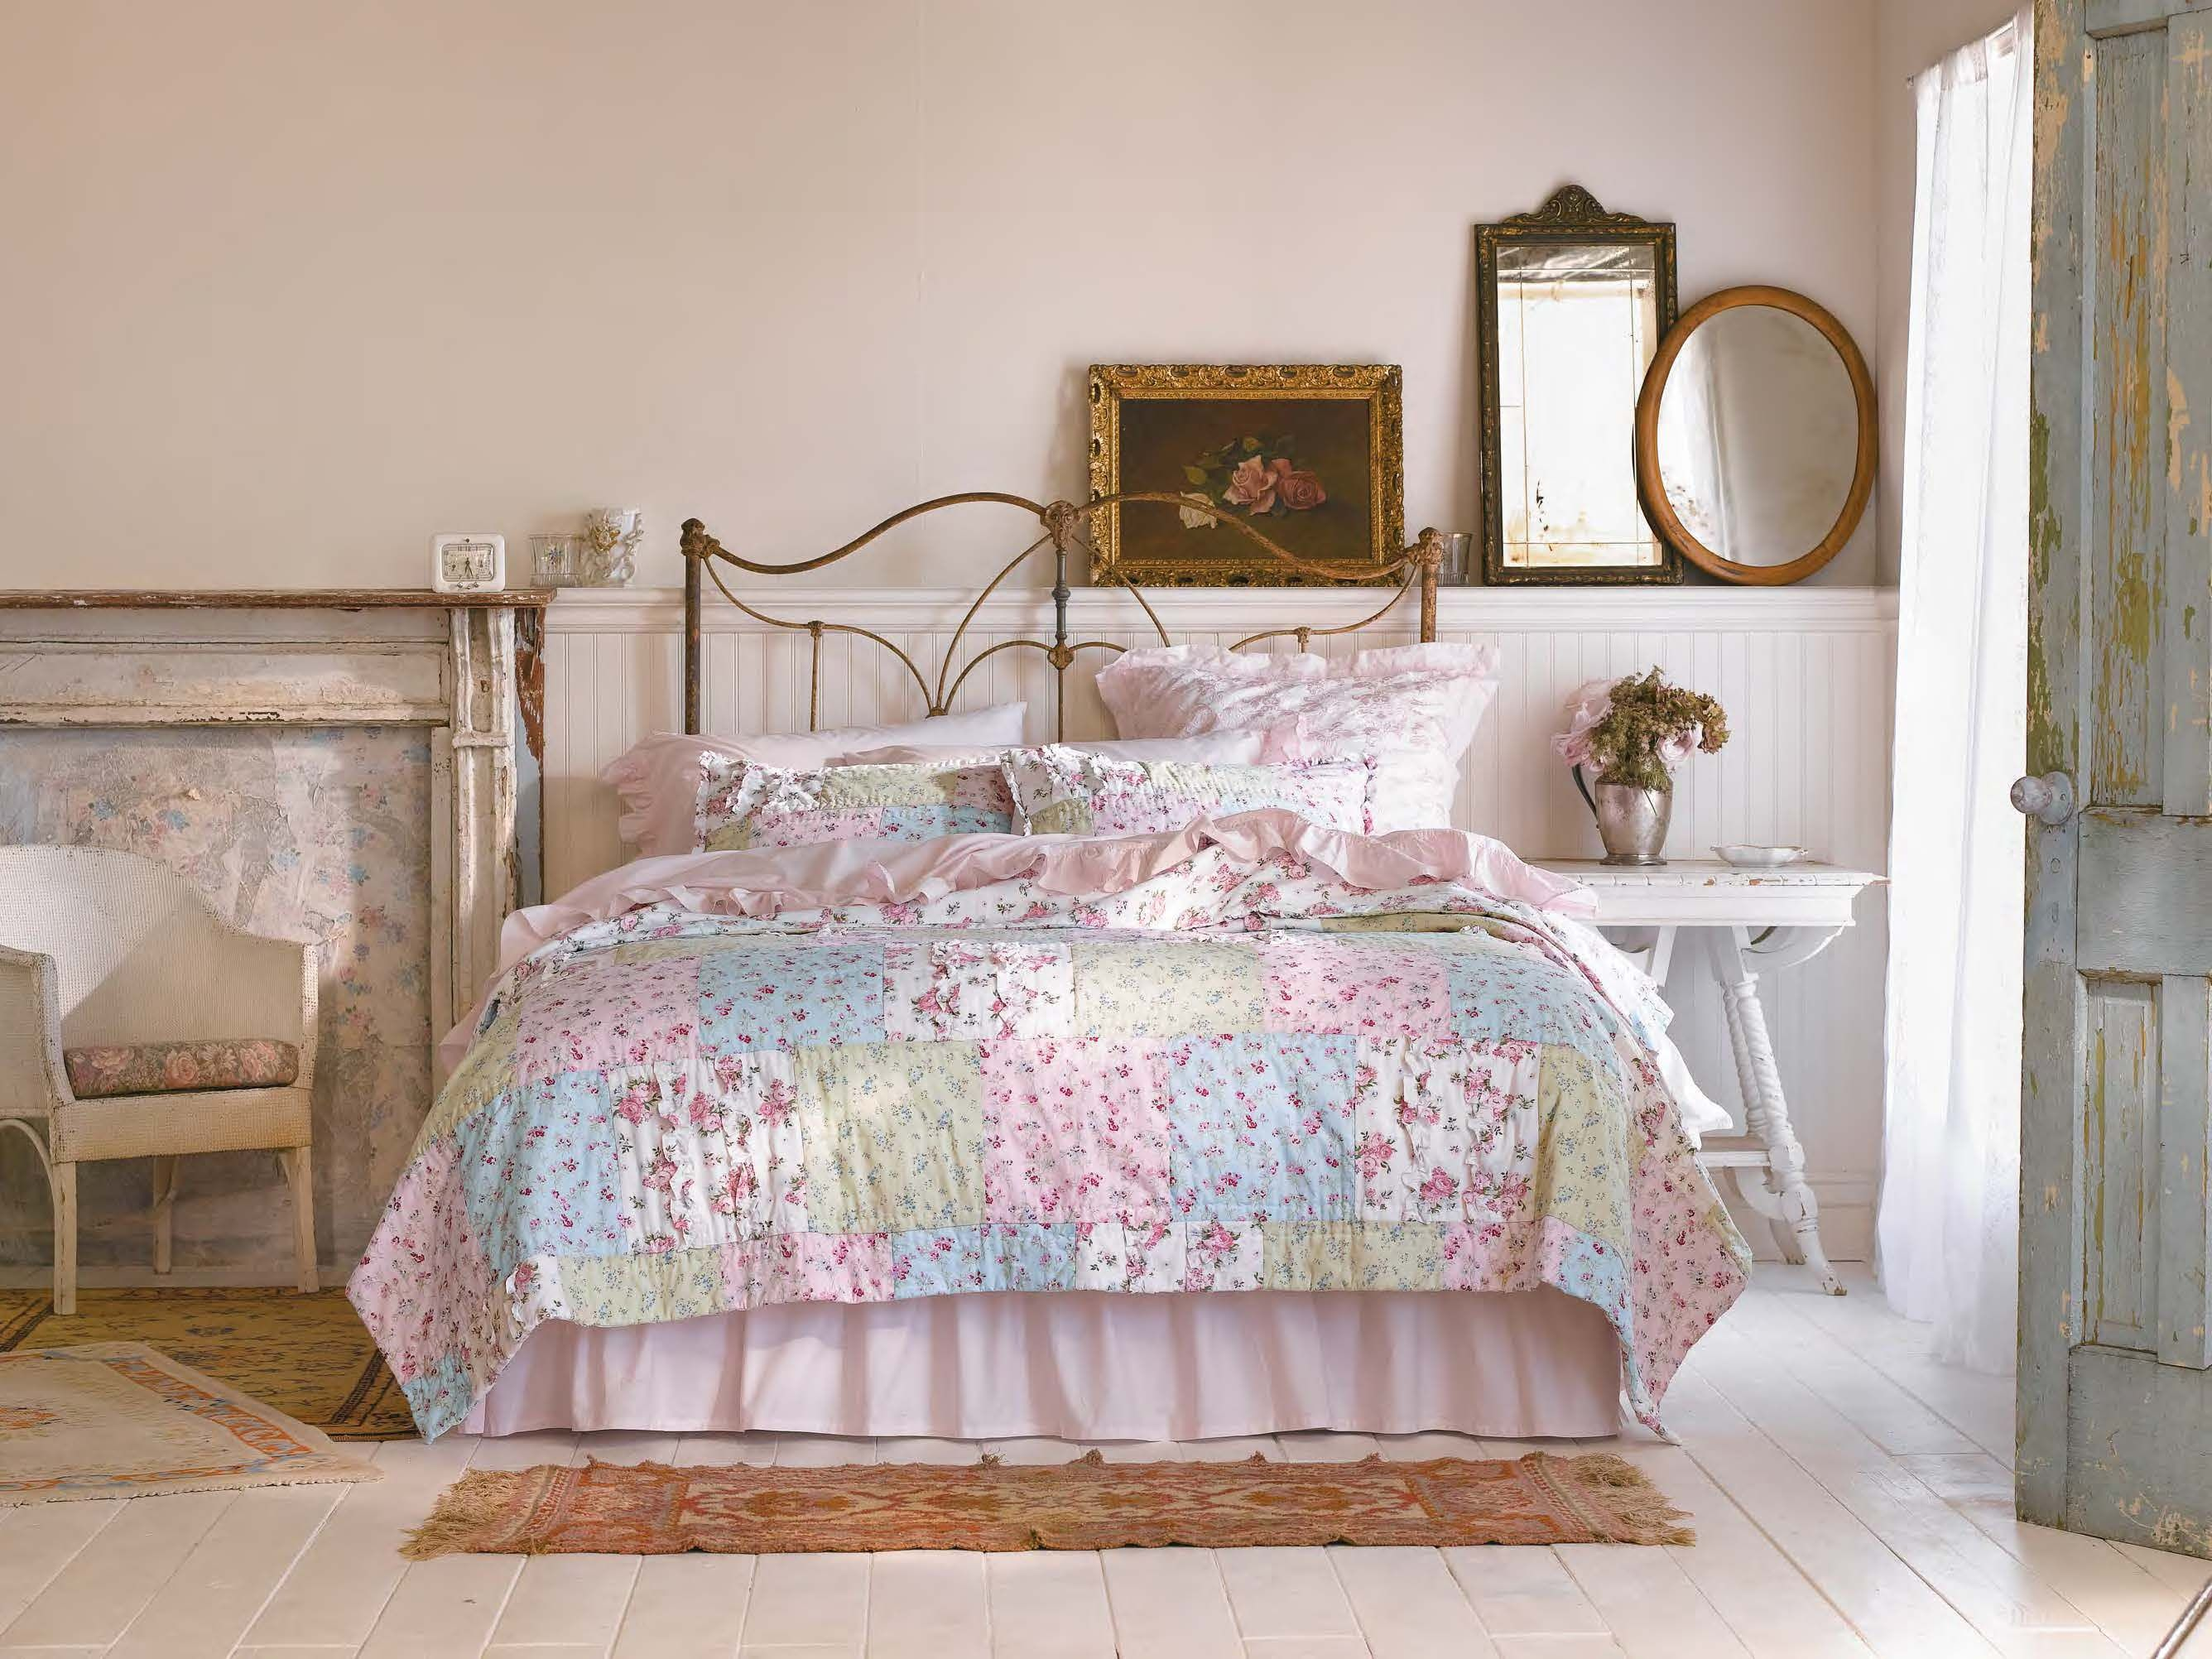 Simply Shabby Chic Bedroom Furniture 17 Best Images About Simply Shabby Chic On Pinterest Balloon